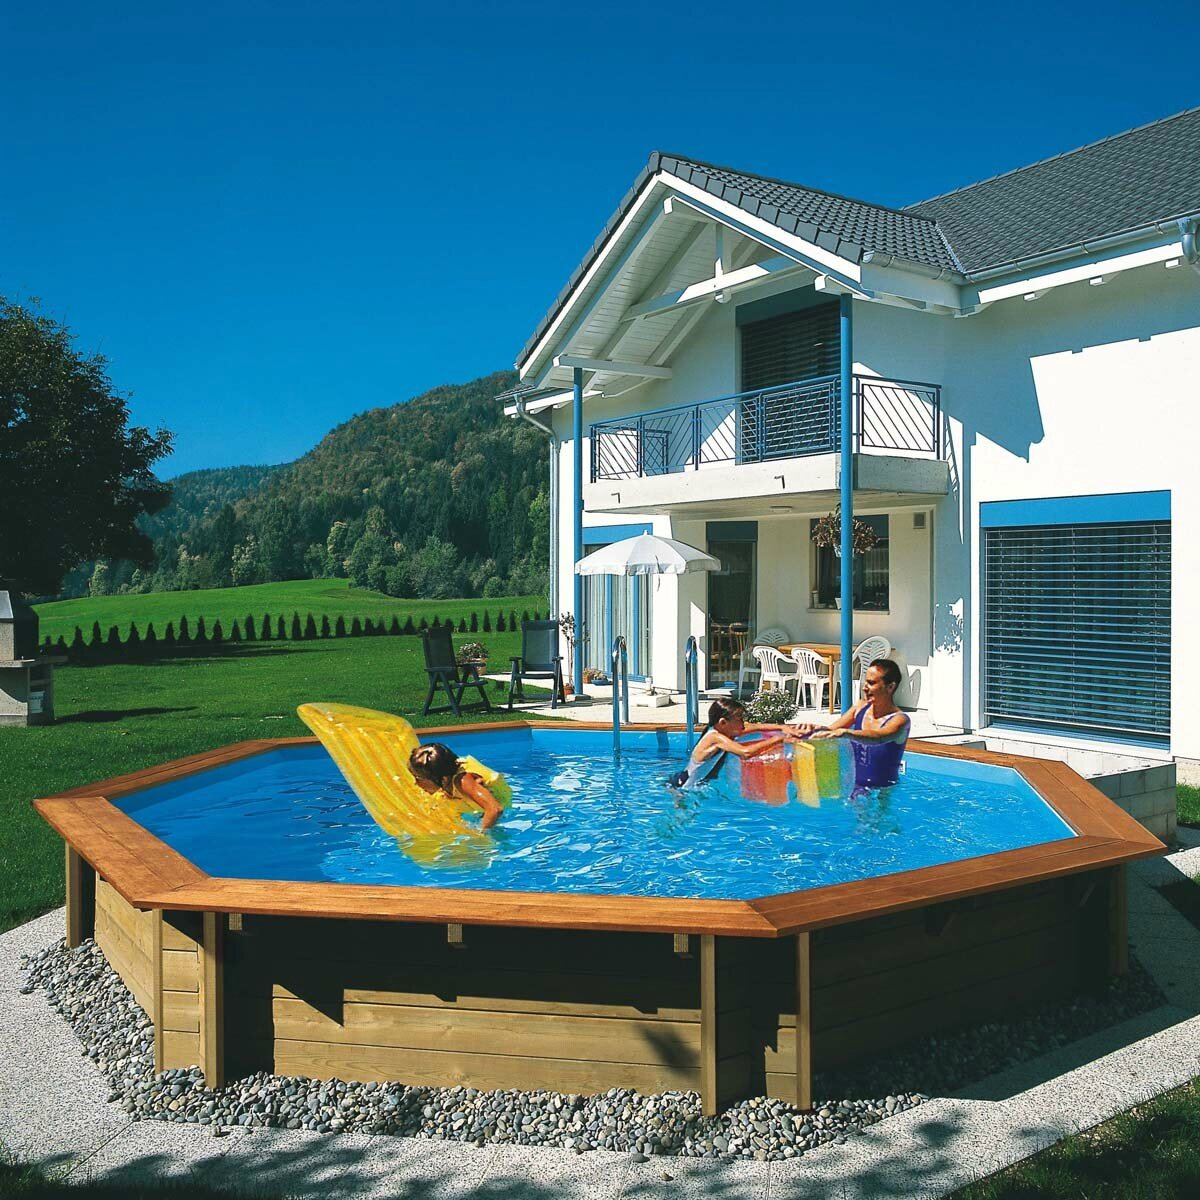 Decoration Piscine Hors Sol: Piscine Hors Sol King Store